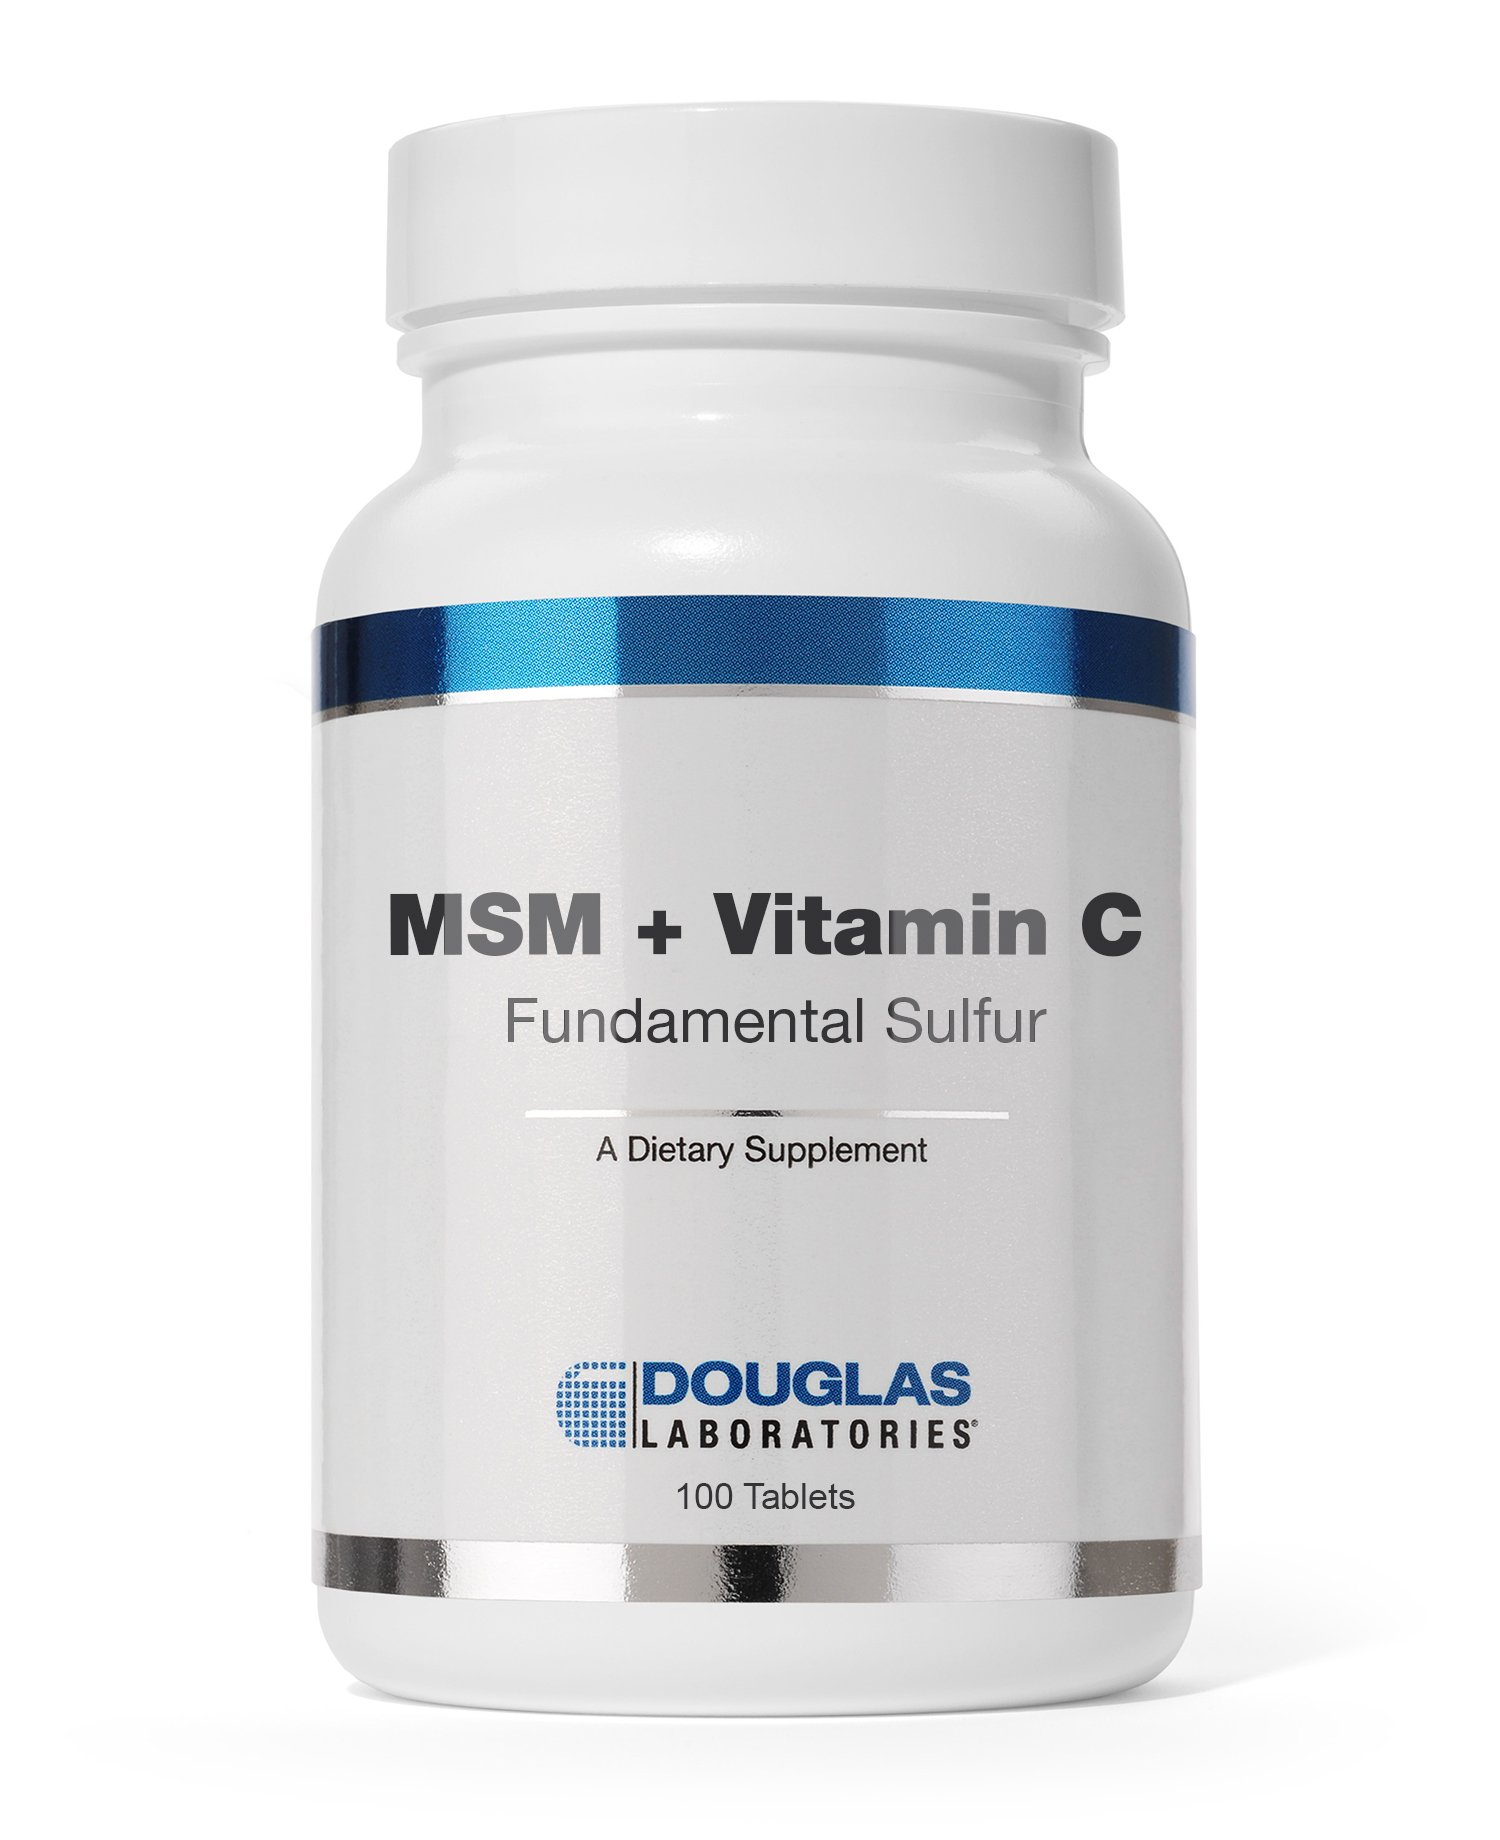 Douglas Laboratories - MSM + Vitamin C (Fundamental Sulfur) - Supports Wound Healing and Capillary Health - 100 Tablets